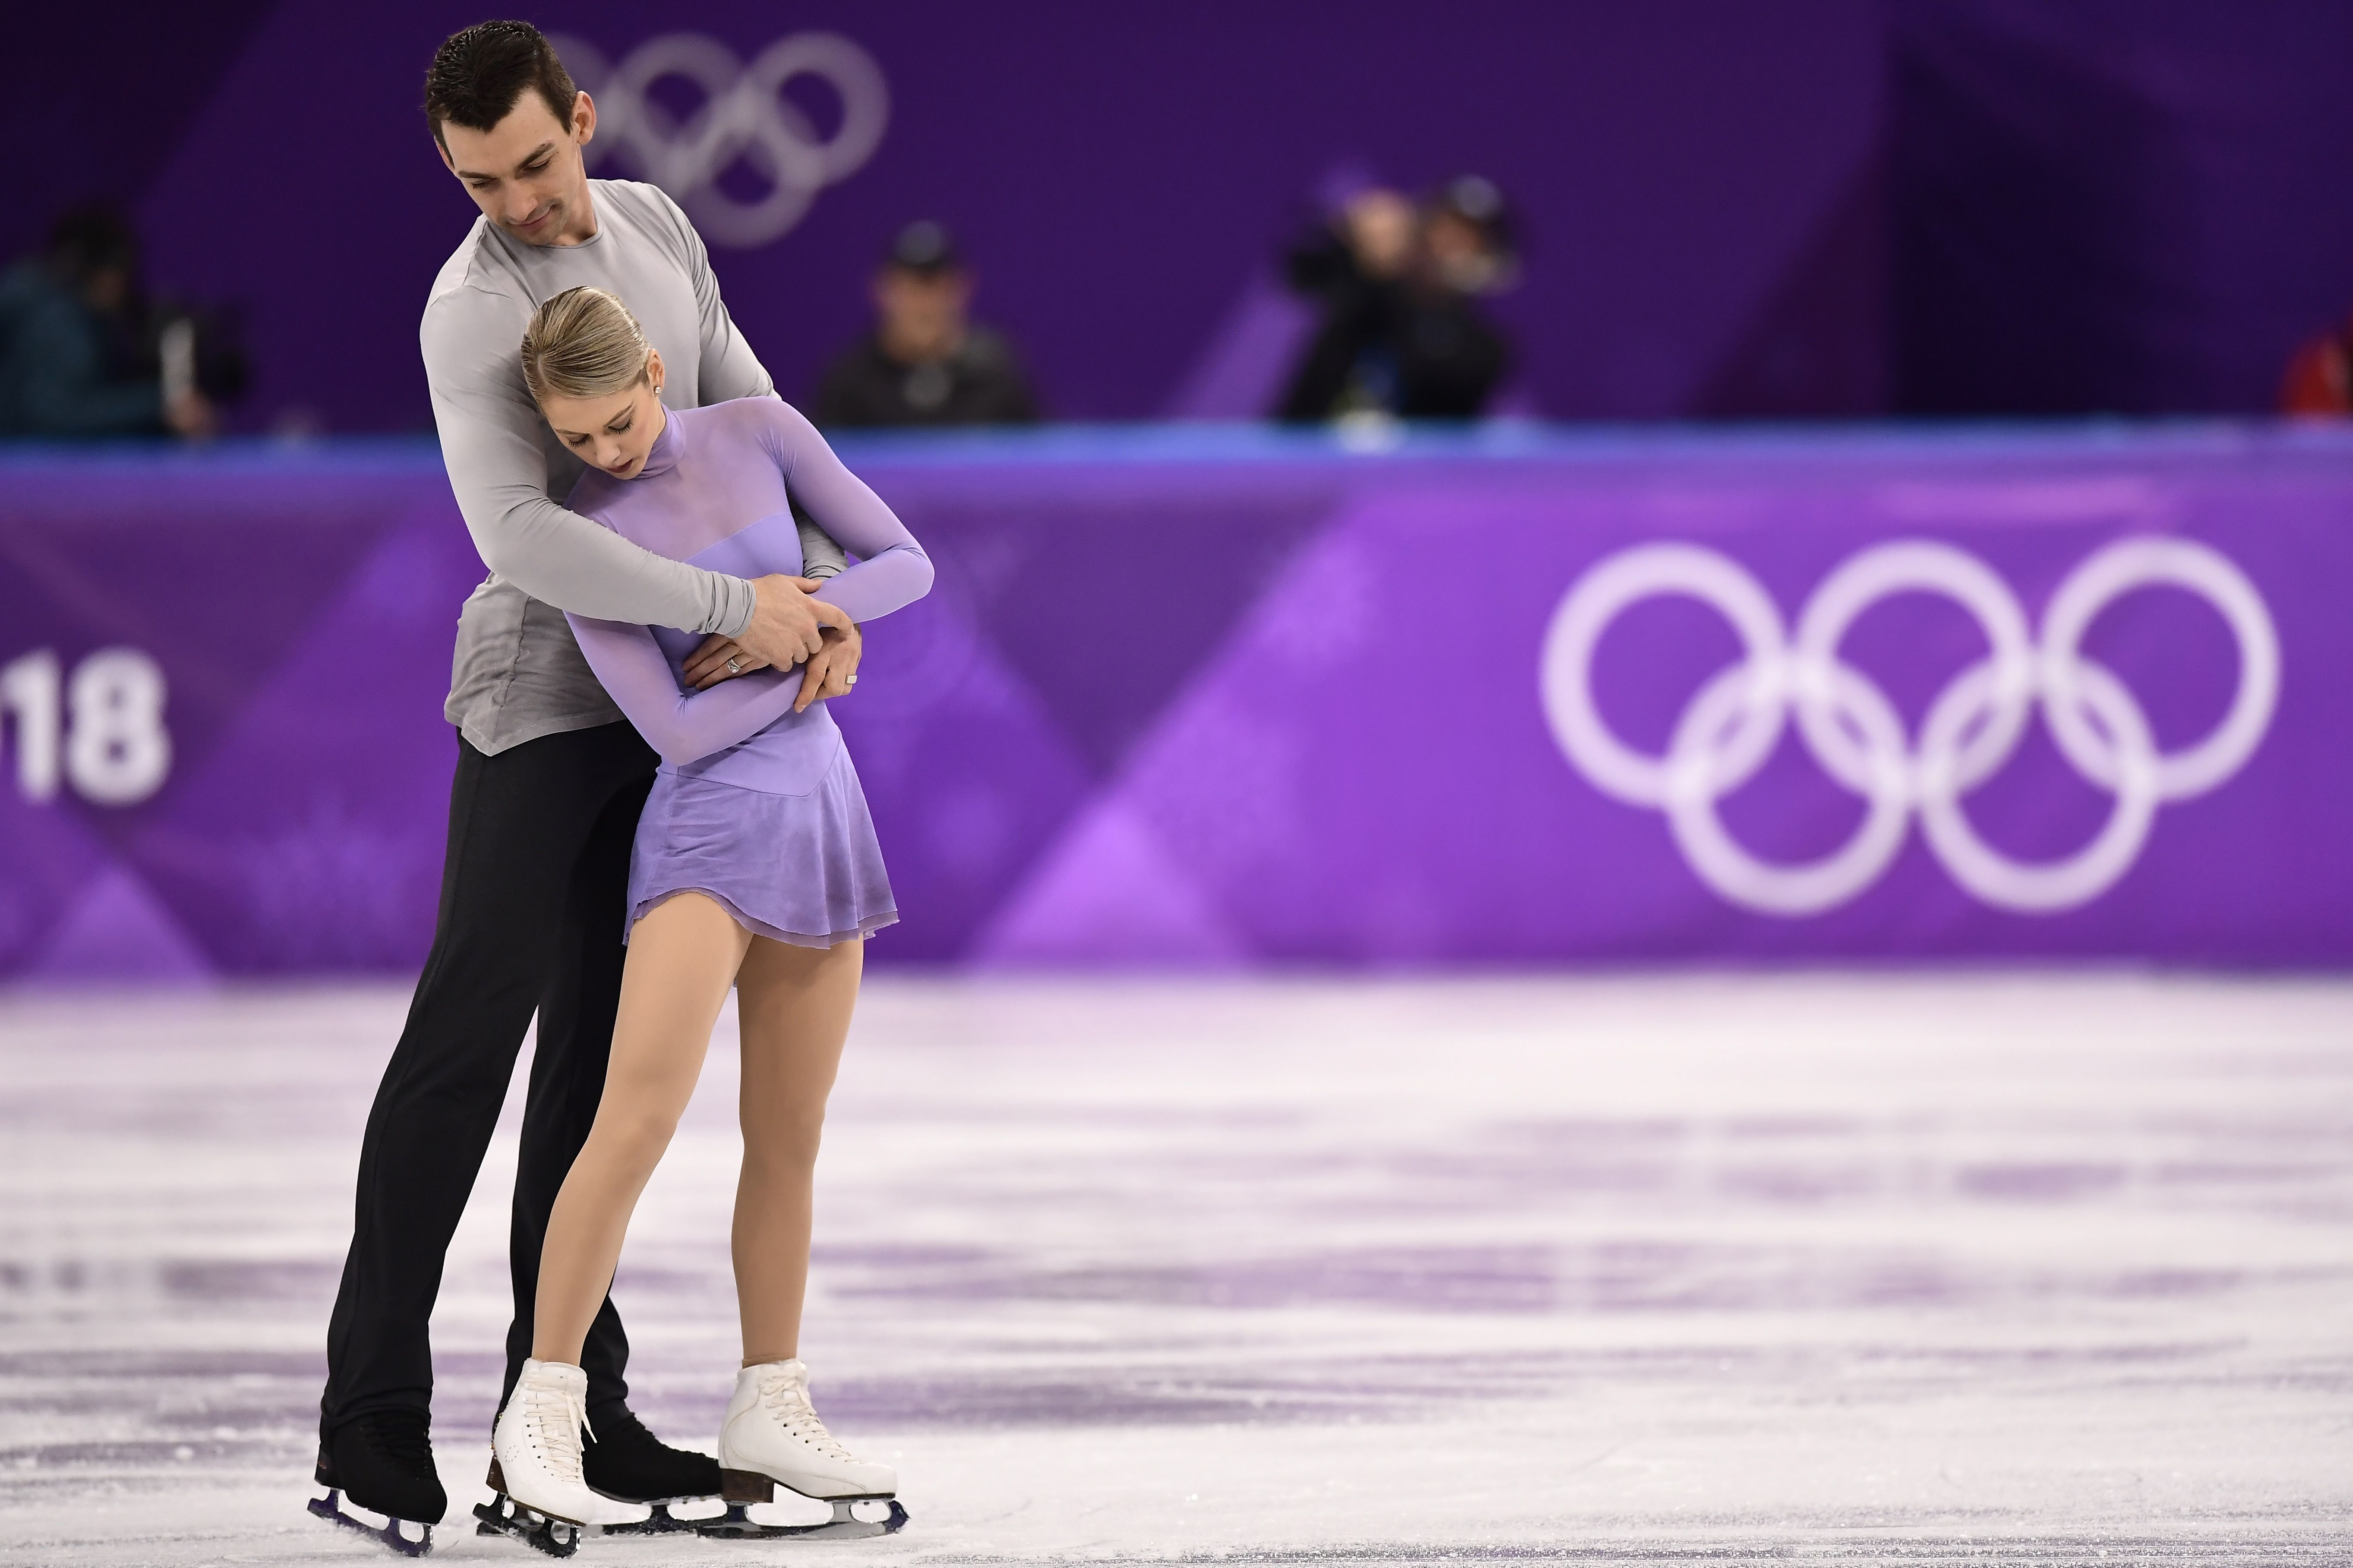 USA's Alexa Scimeca Knierim and USA's Chris Knierim compete in the pair free skating event during the PyeongChang 2018 Winter Olympic Games at the Gangneung Ice Arena in Gangneung on Feb. 15, 2018.